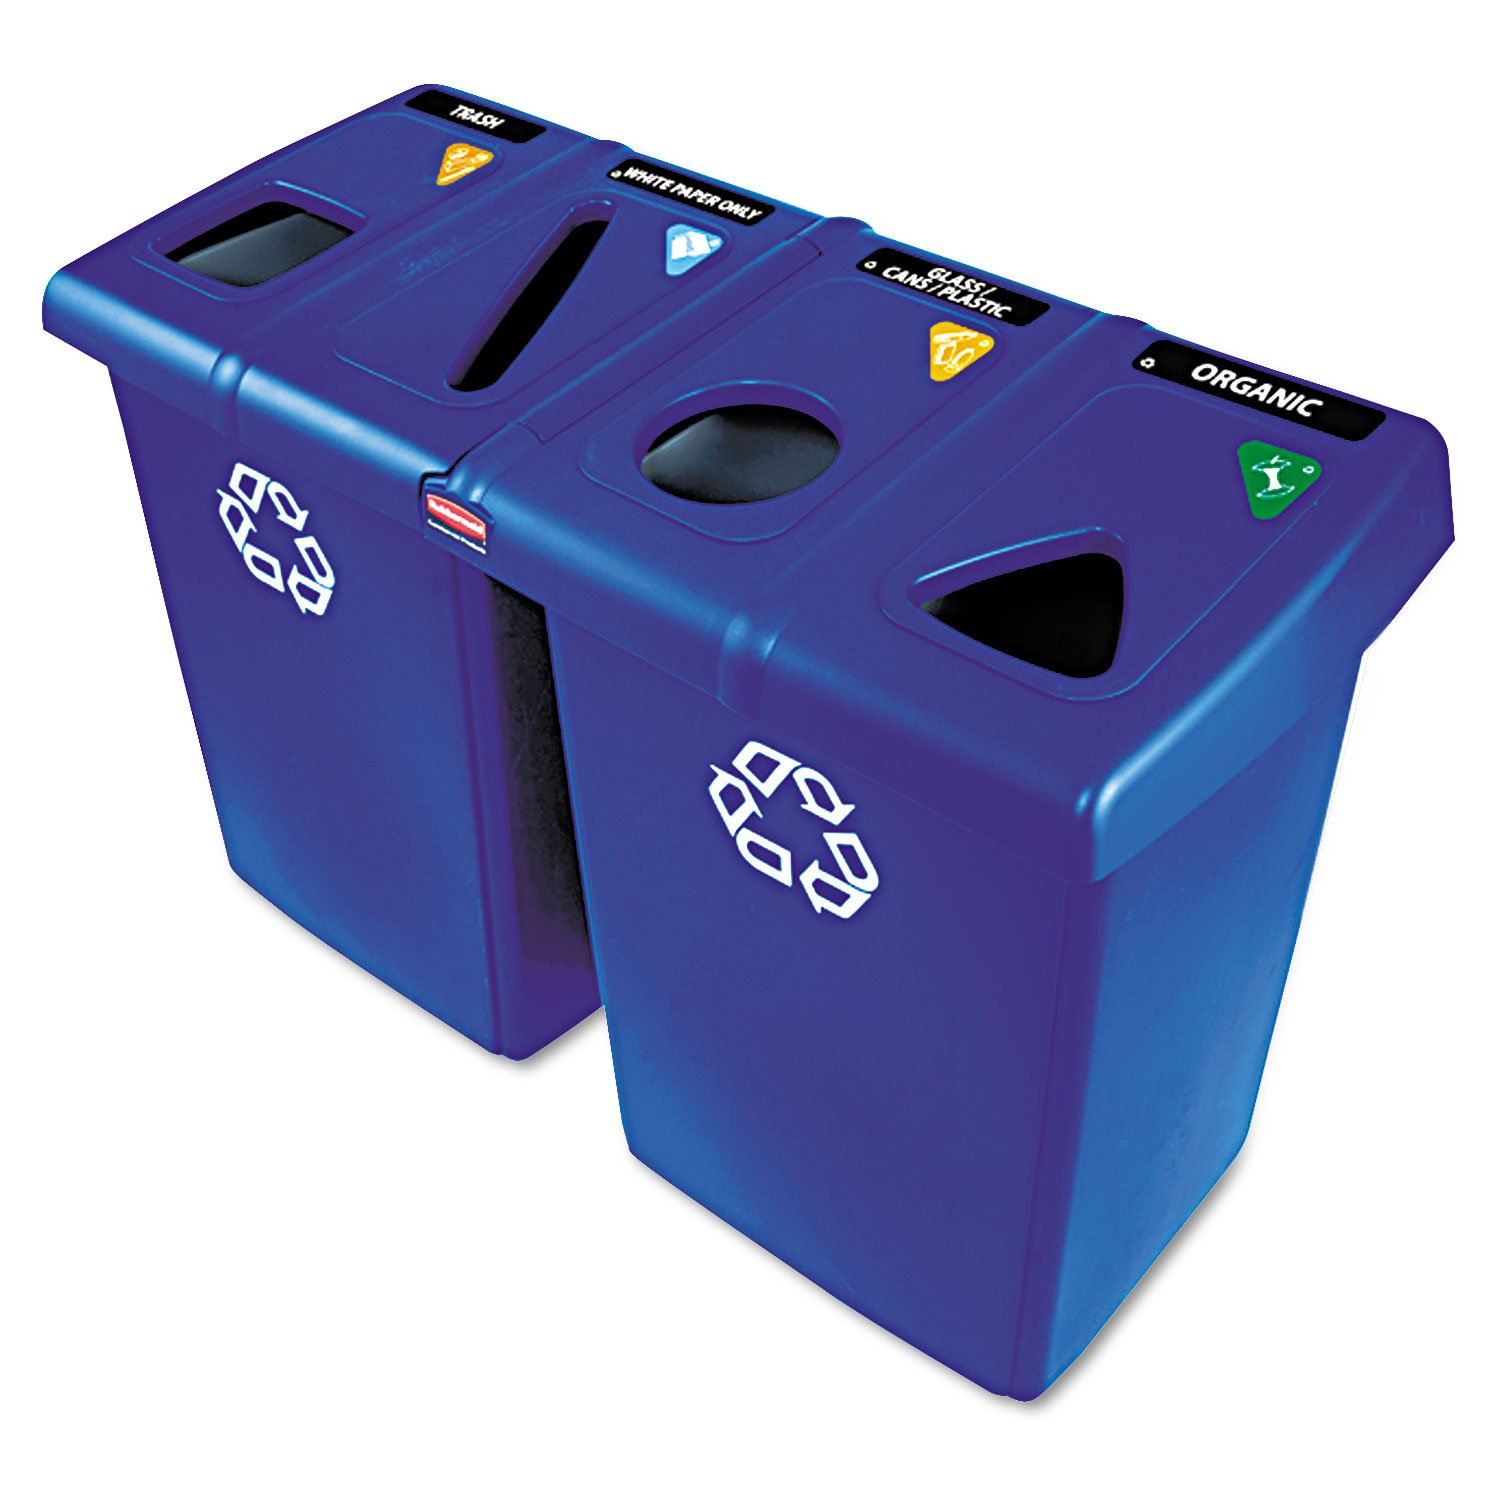 Rubbermaid Commercial Products Rcp 1792372 C-Glutton 4-Stream Recycli Ng Station Blu RCP 1792372 by Rubbermaid Commercial Products